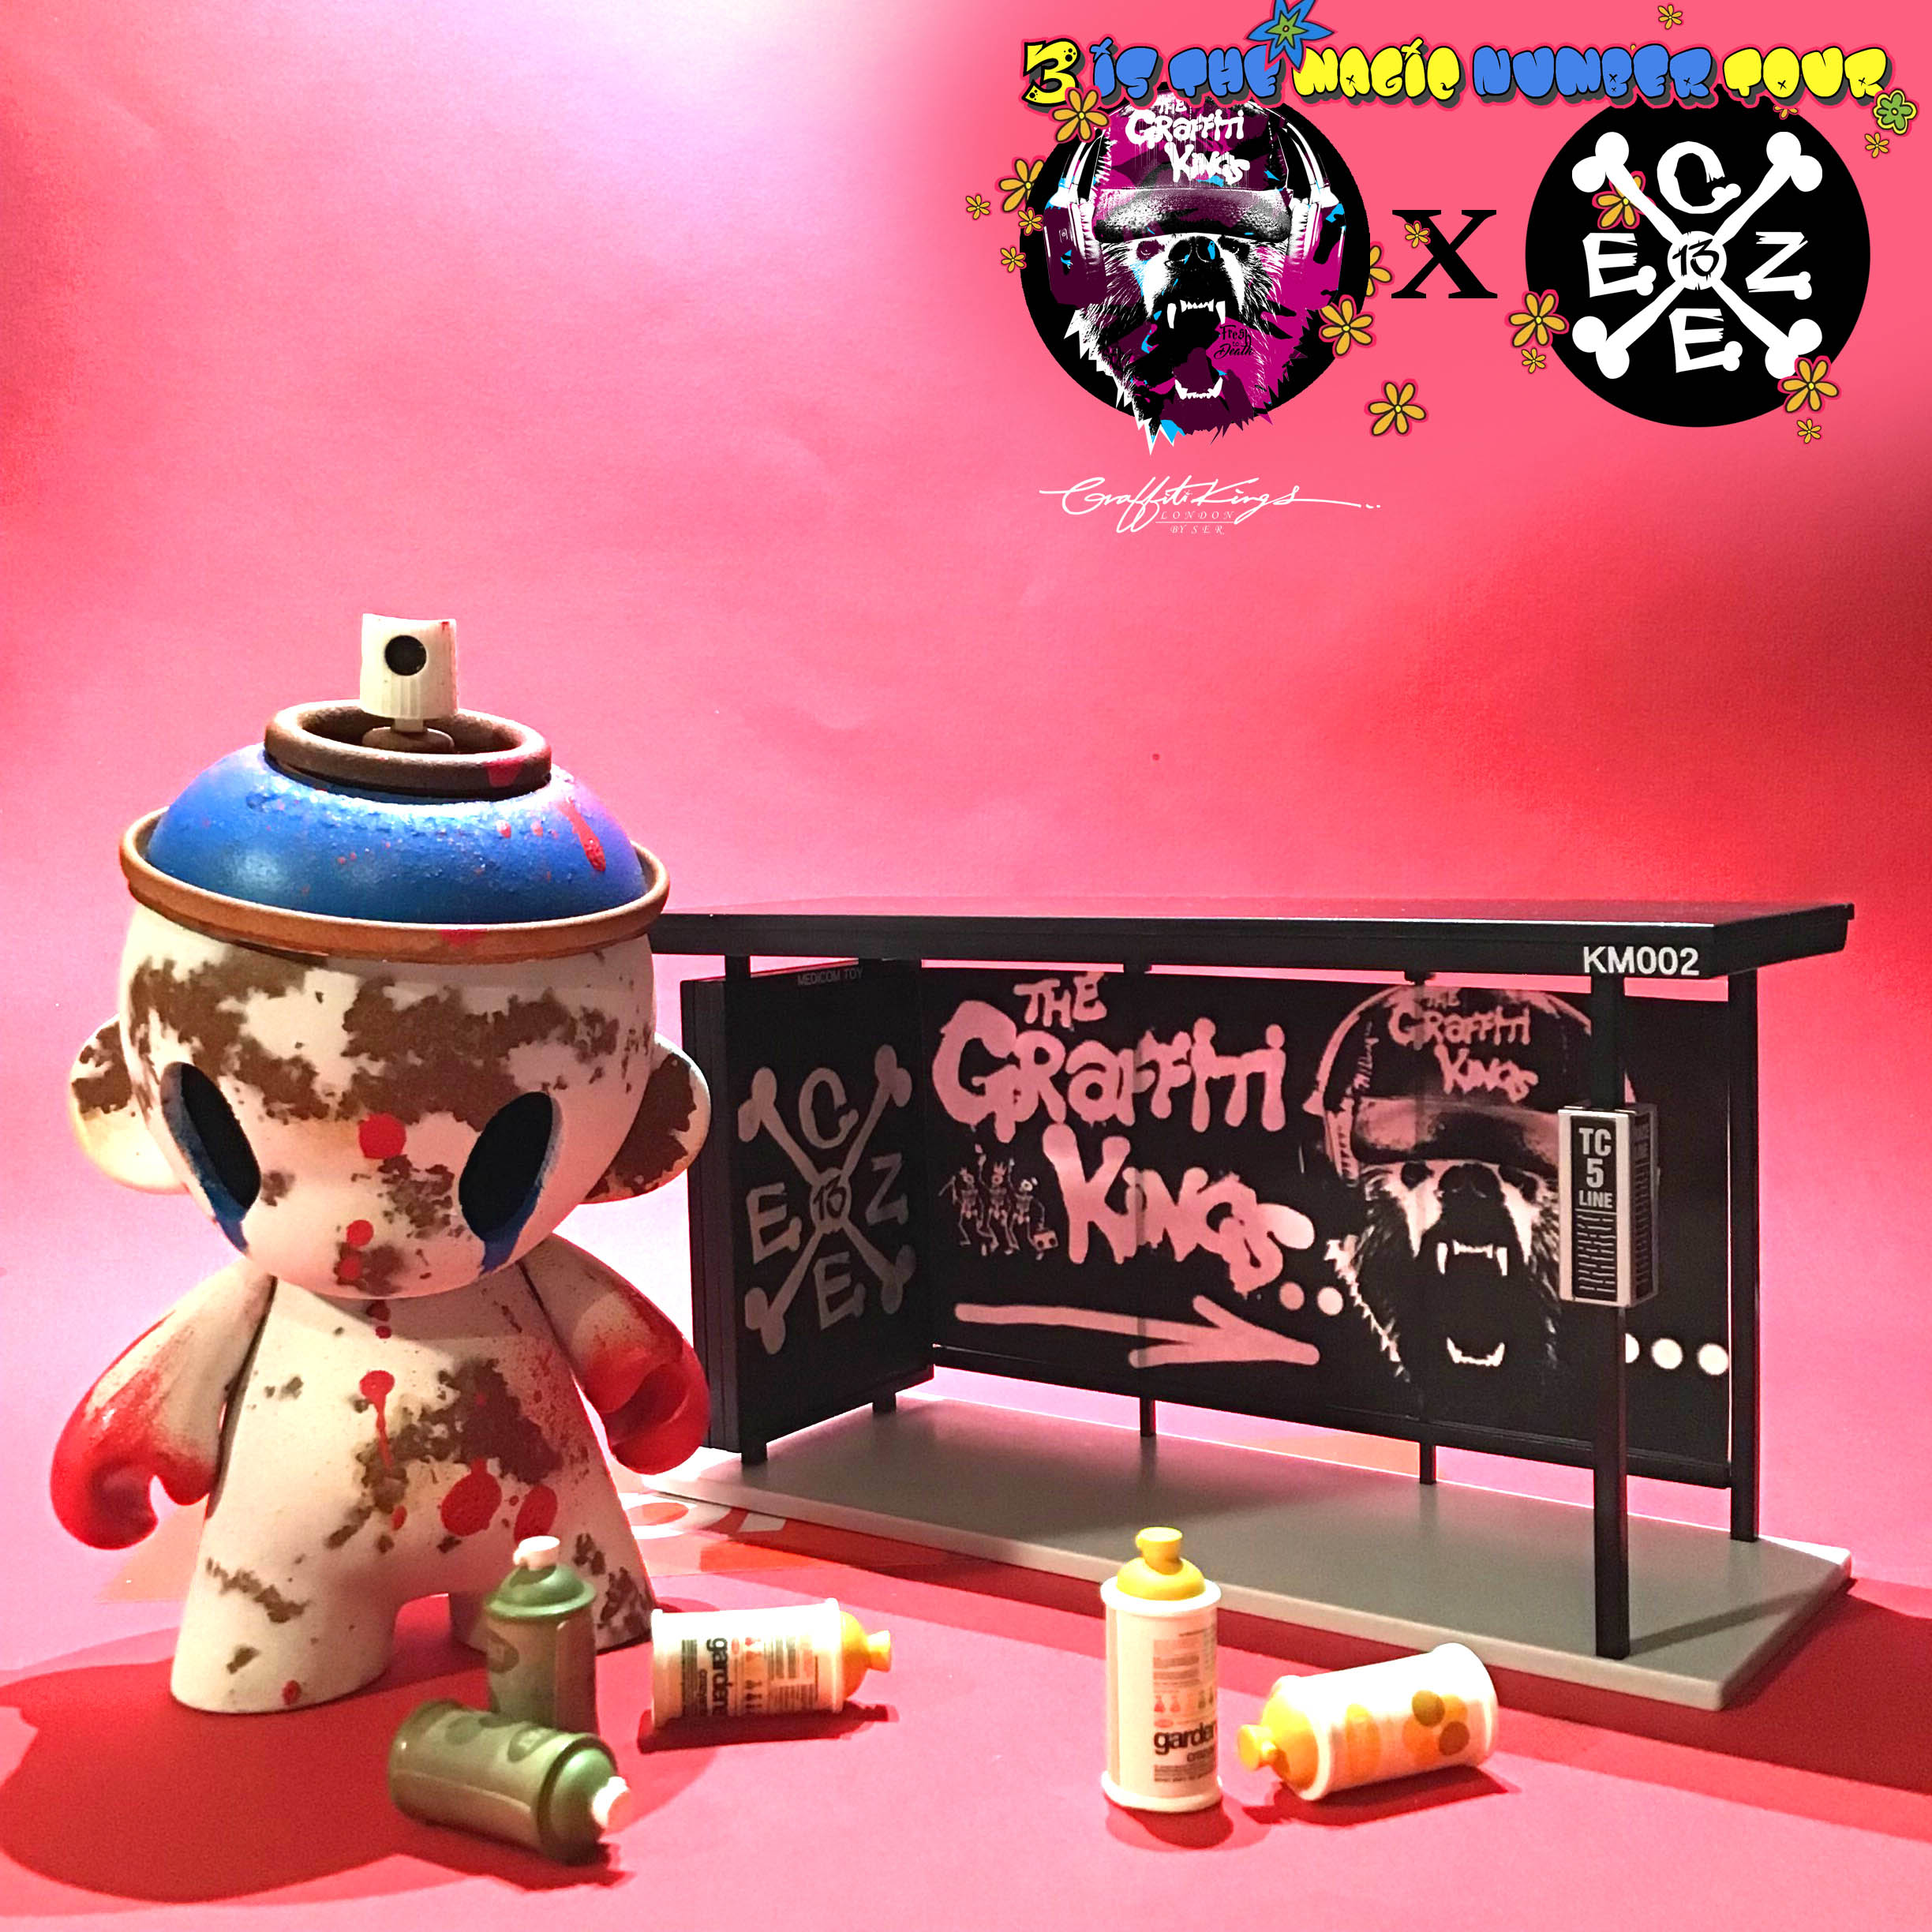 Graffiti Kings x czee13 custom designer toy